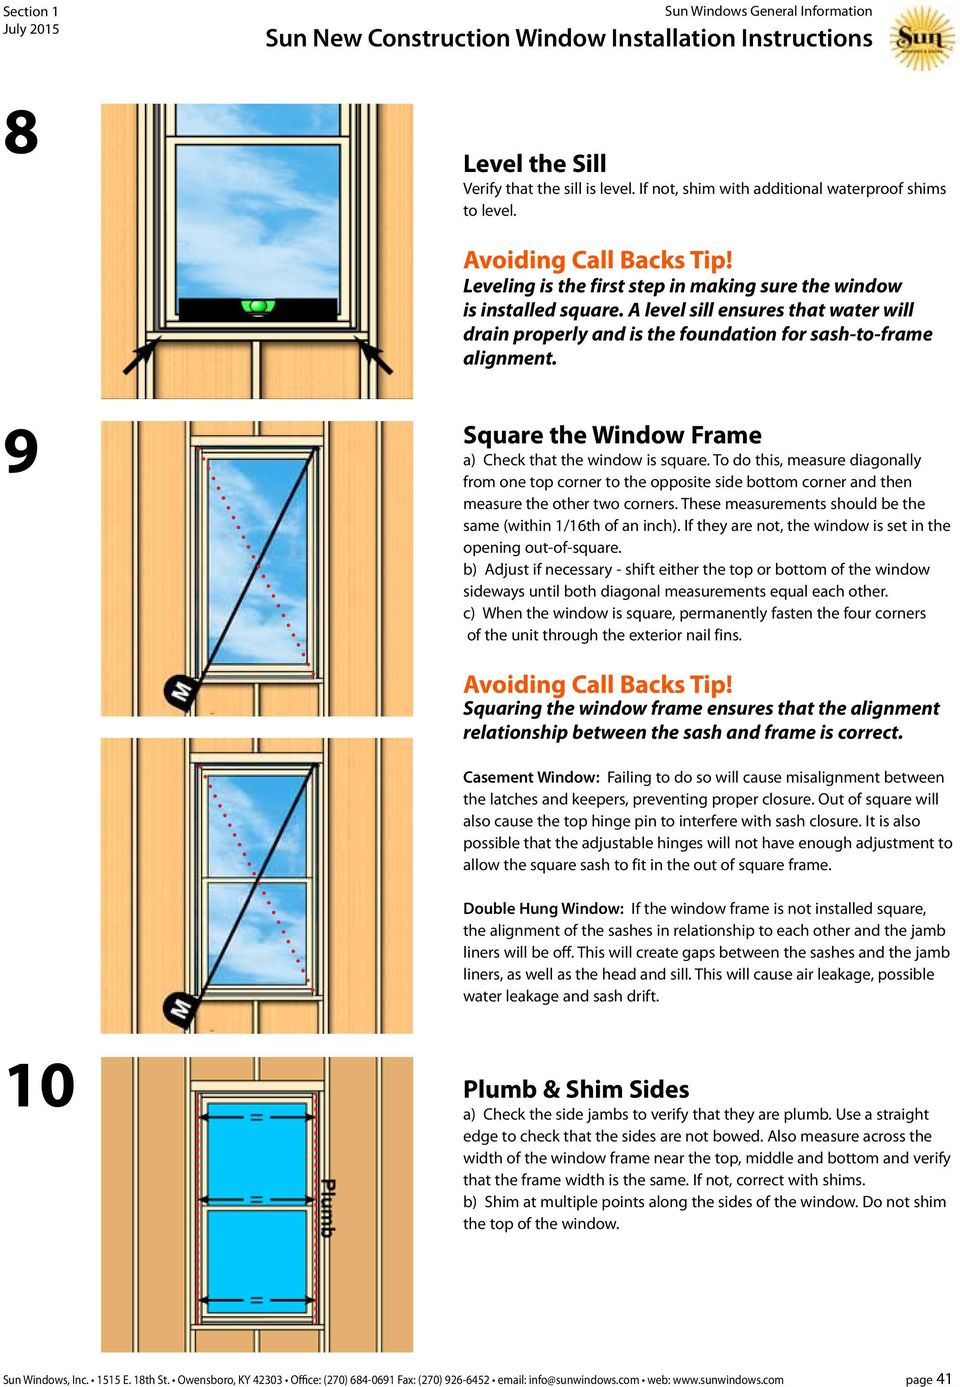 9 Square the Window Frame a) Check that the window is square. To do this, measure diagonally from one top corner to the opposite side bottom corner and then measure the other two corners.